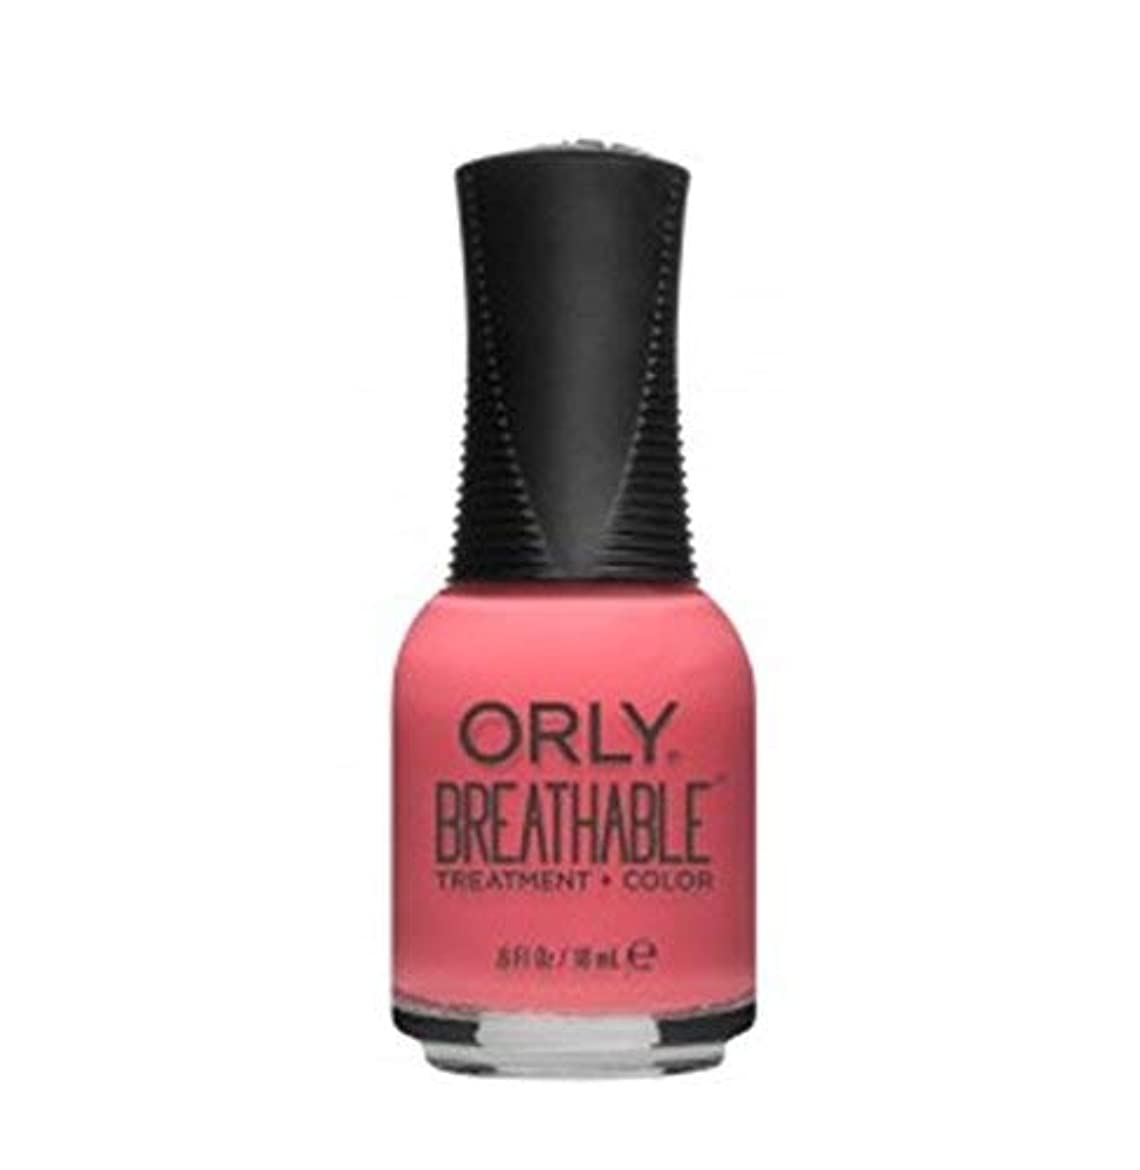 マイルド負荷揃えるORLY Breathable Lacquer - Treatment+Color - Flower Power - 18 ml / 0.6 oz